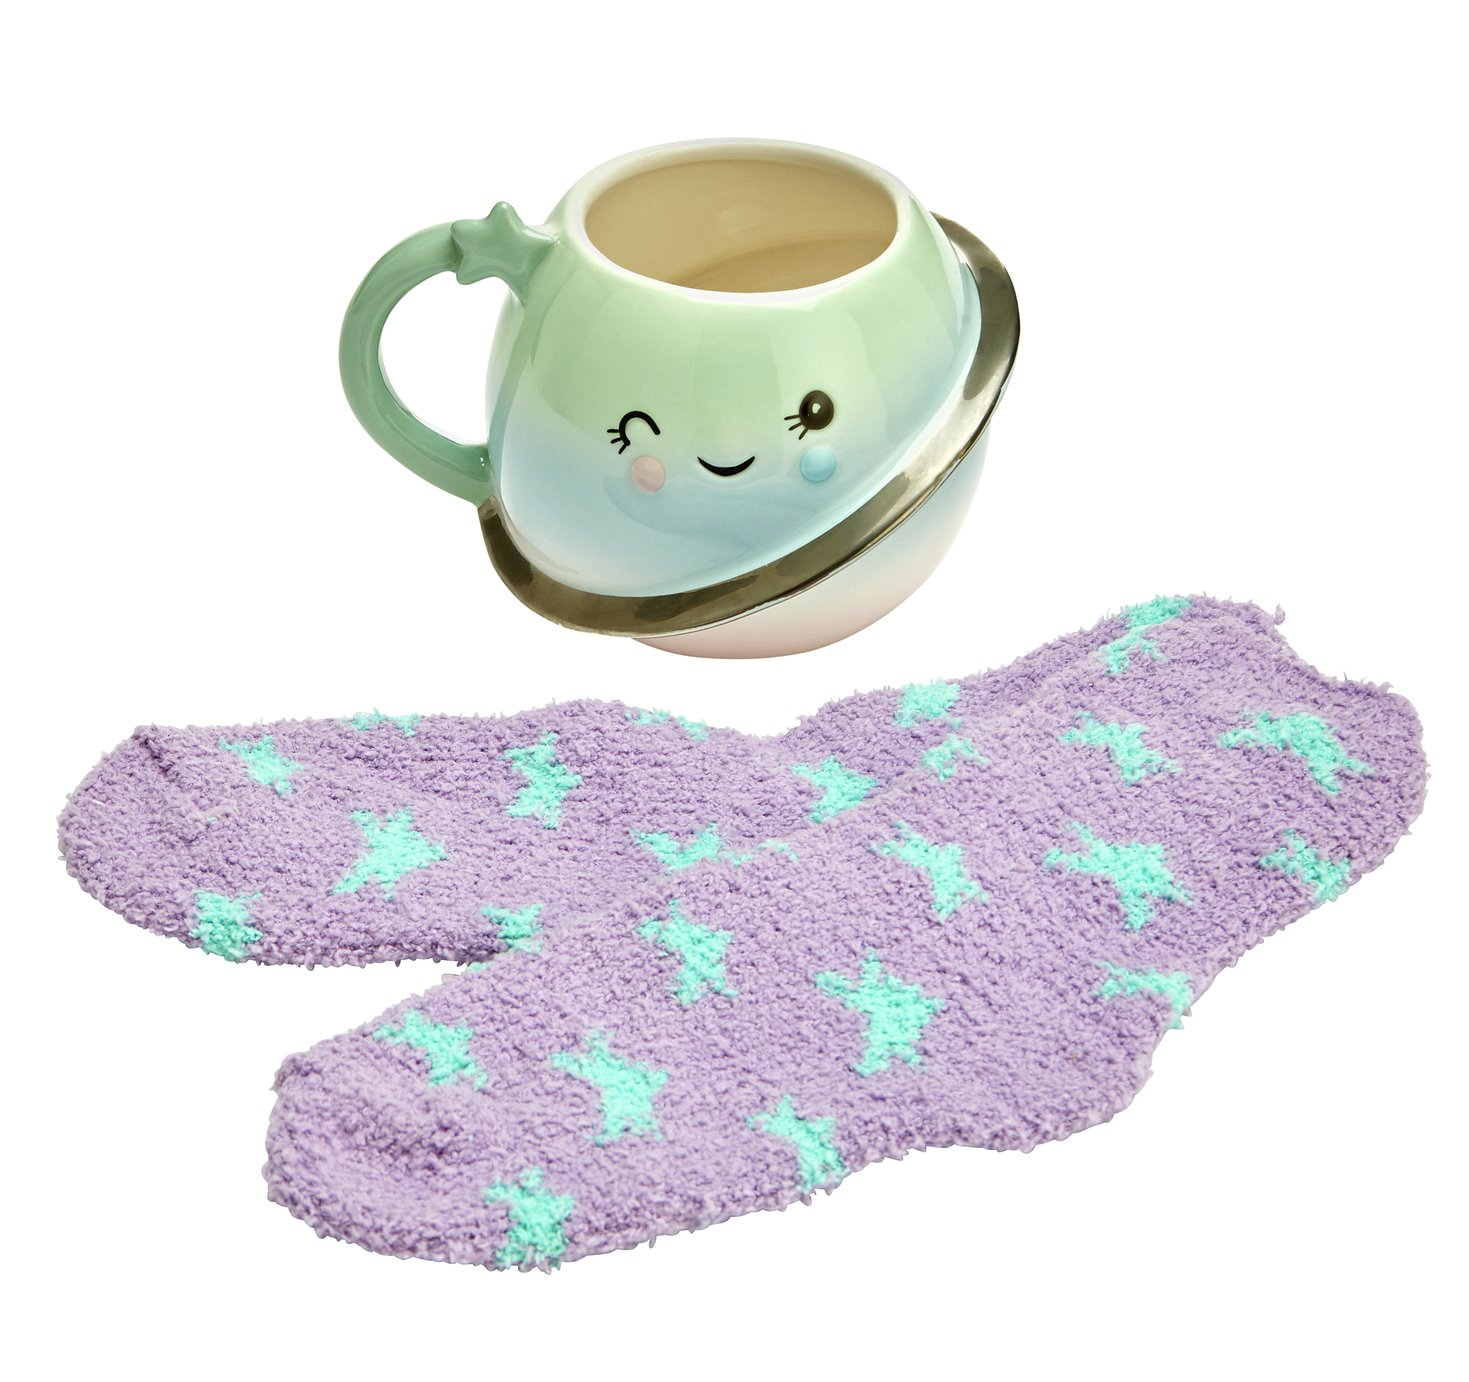 Imagination Station Planet Mug & Socks